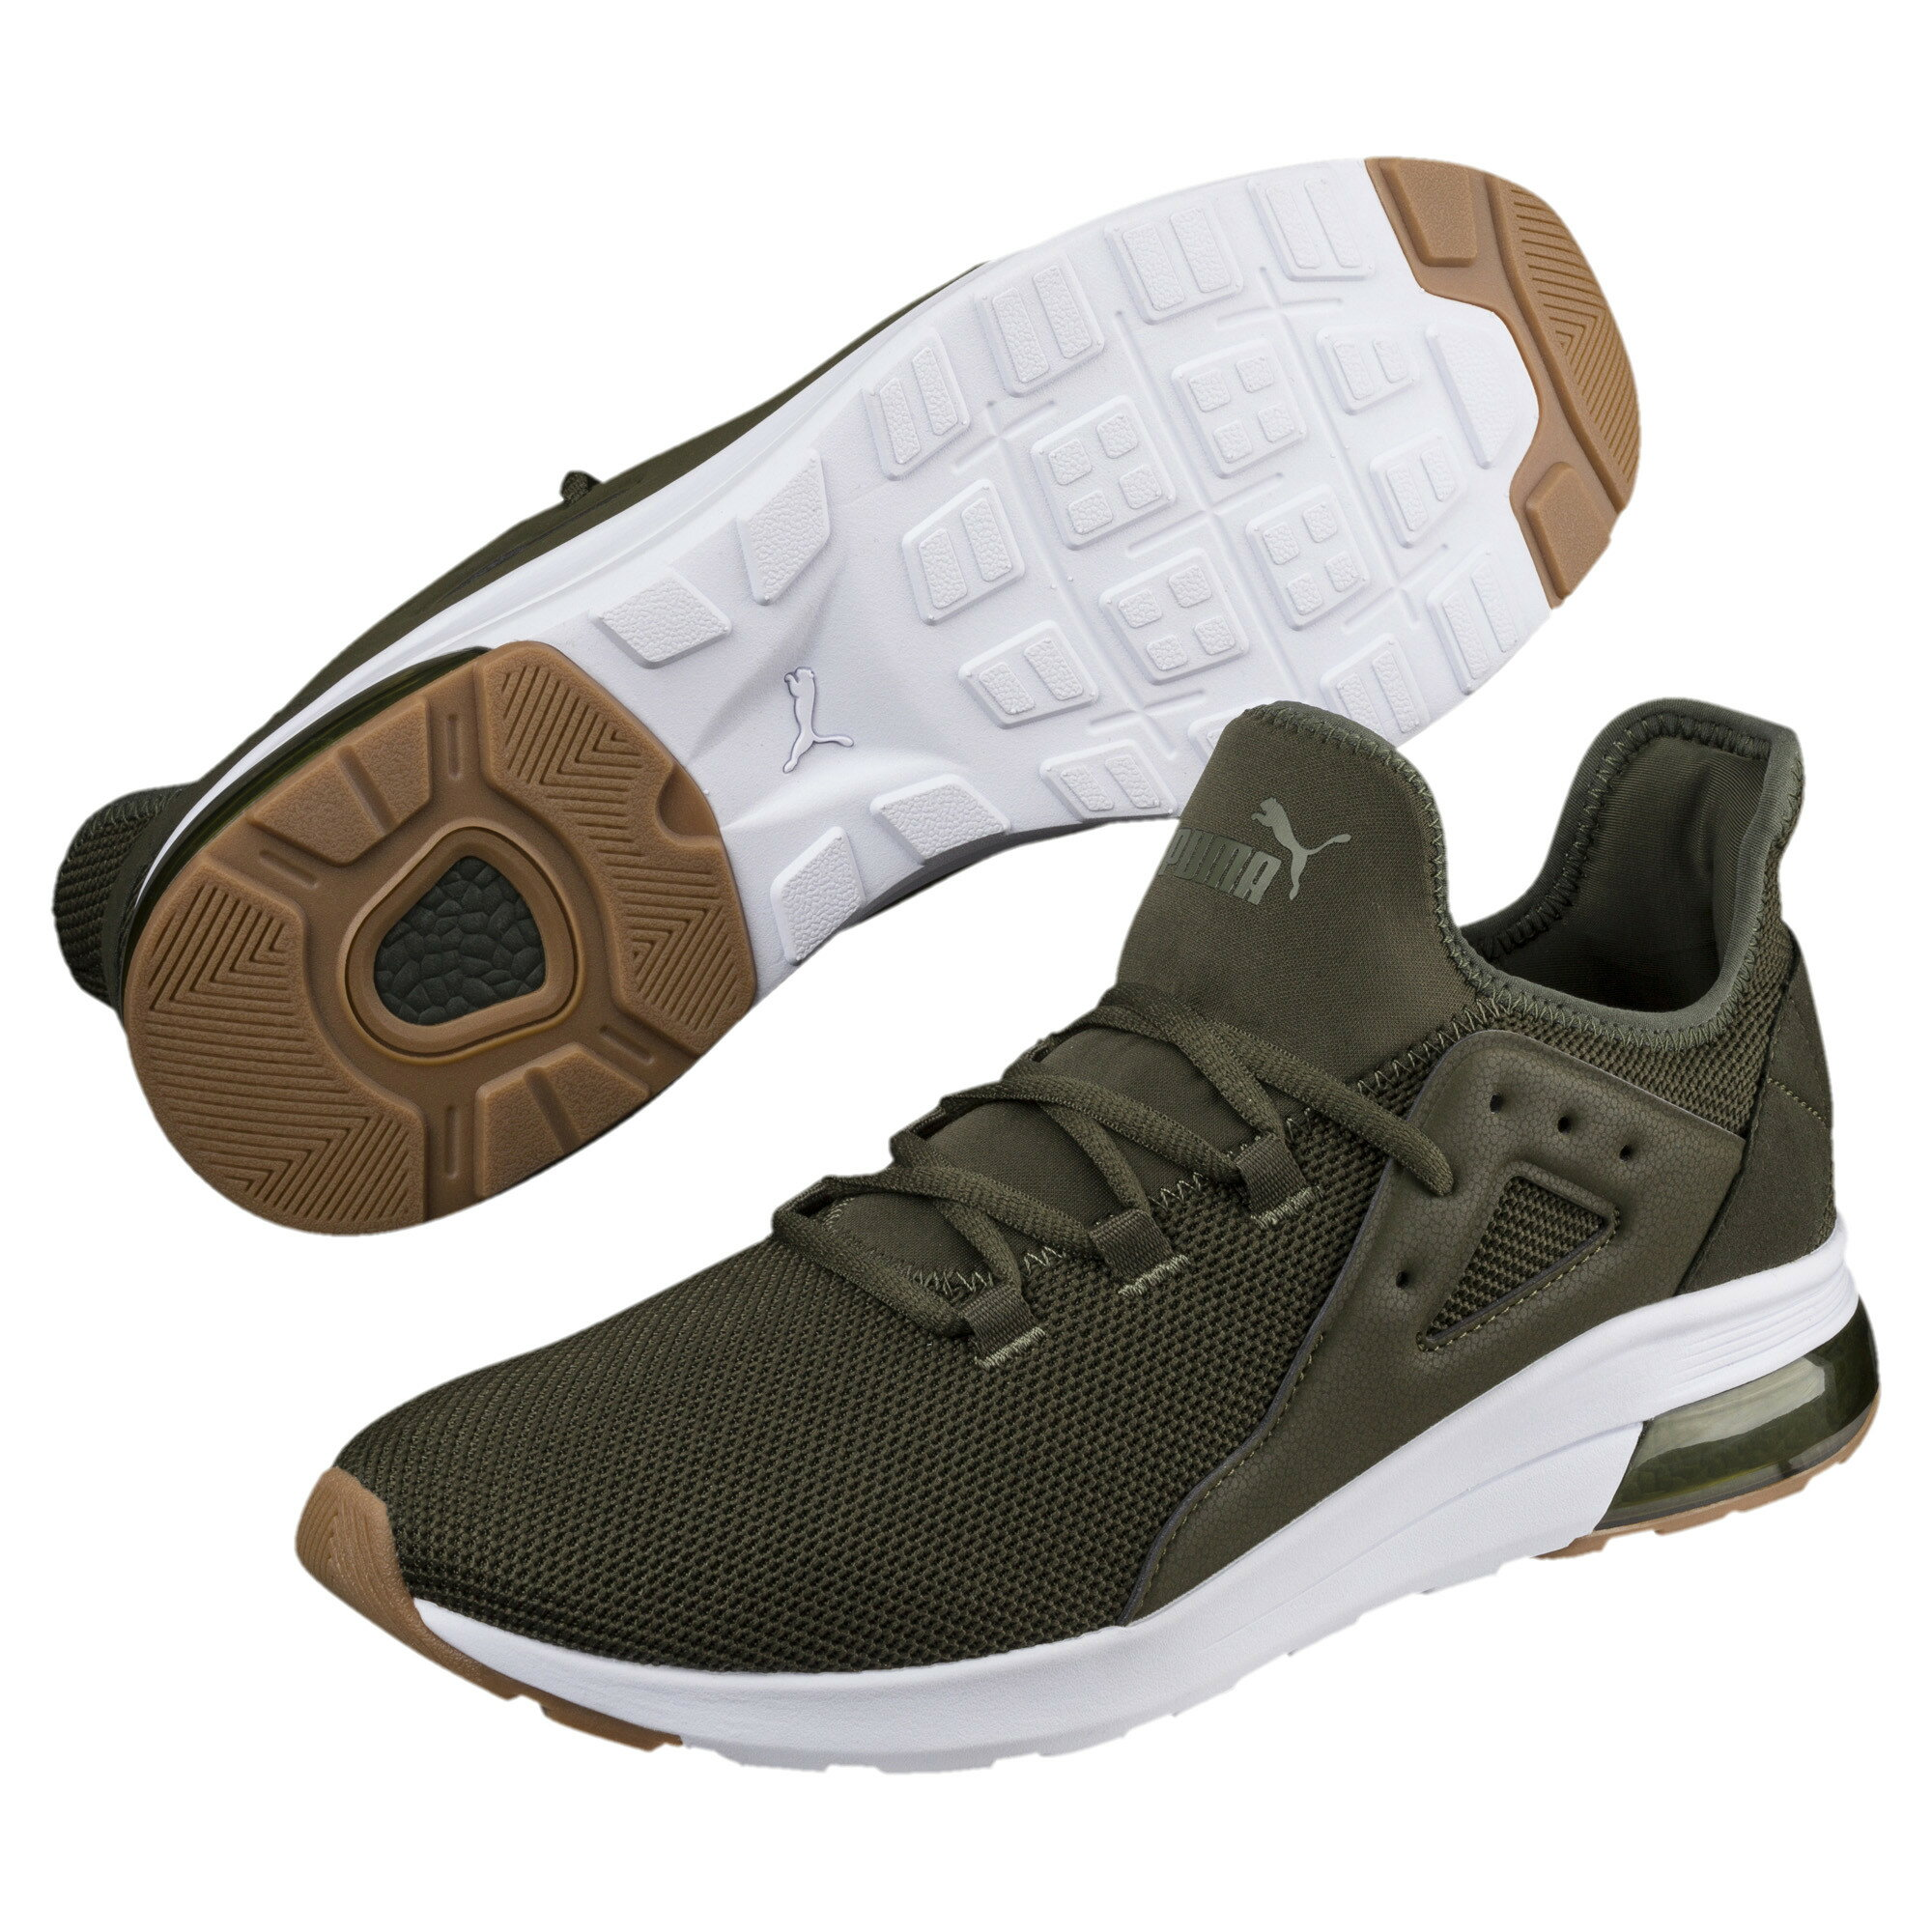 591088fe2d8 Official Puma Store  PUMA Electron Street Sneakers